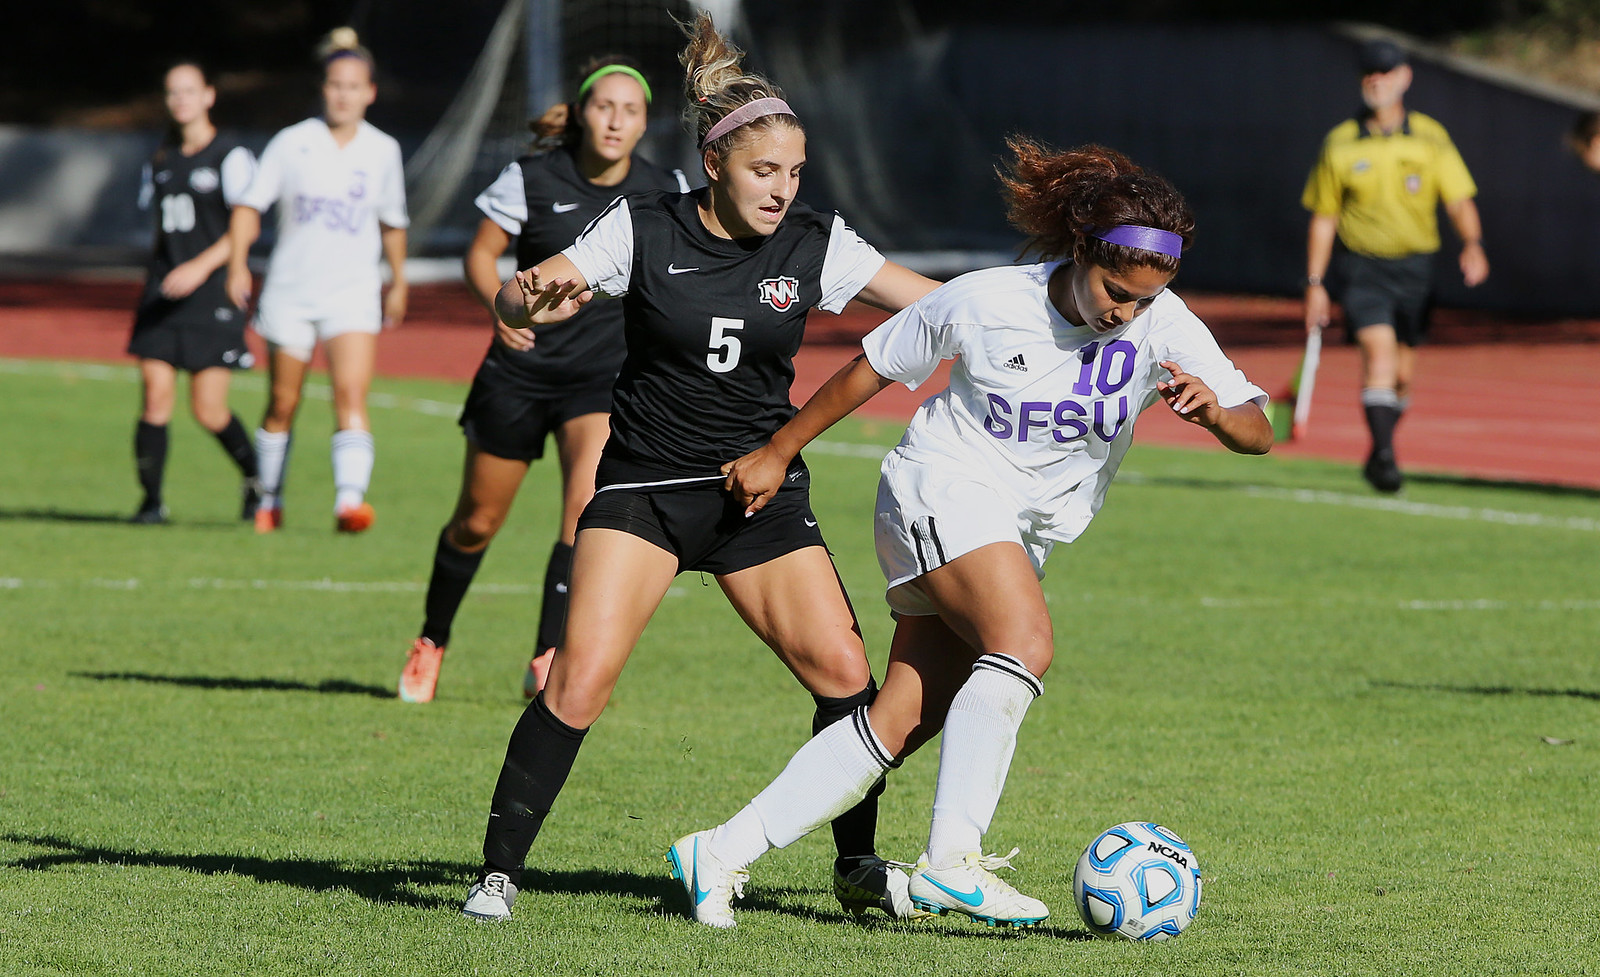 Mariela Holguin, right, defends the ball from Kelsey Martin during a game featuring the SF State Gators vs the Northwest Nazarene University Crusaders at Cox Stadium on Sept. 5. The Gators were able to secure a victory one minute into the first overtime, with the final score being 1-0. Photo by John Ornelas / Xpress